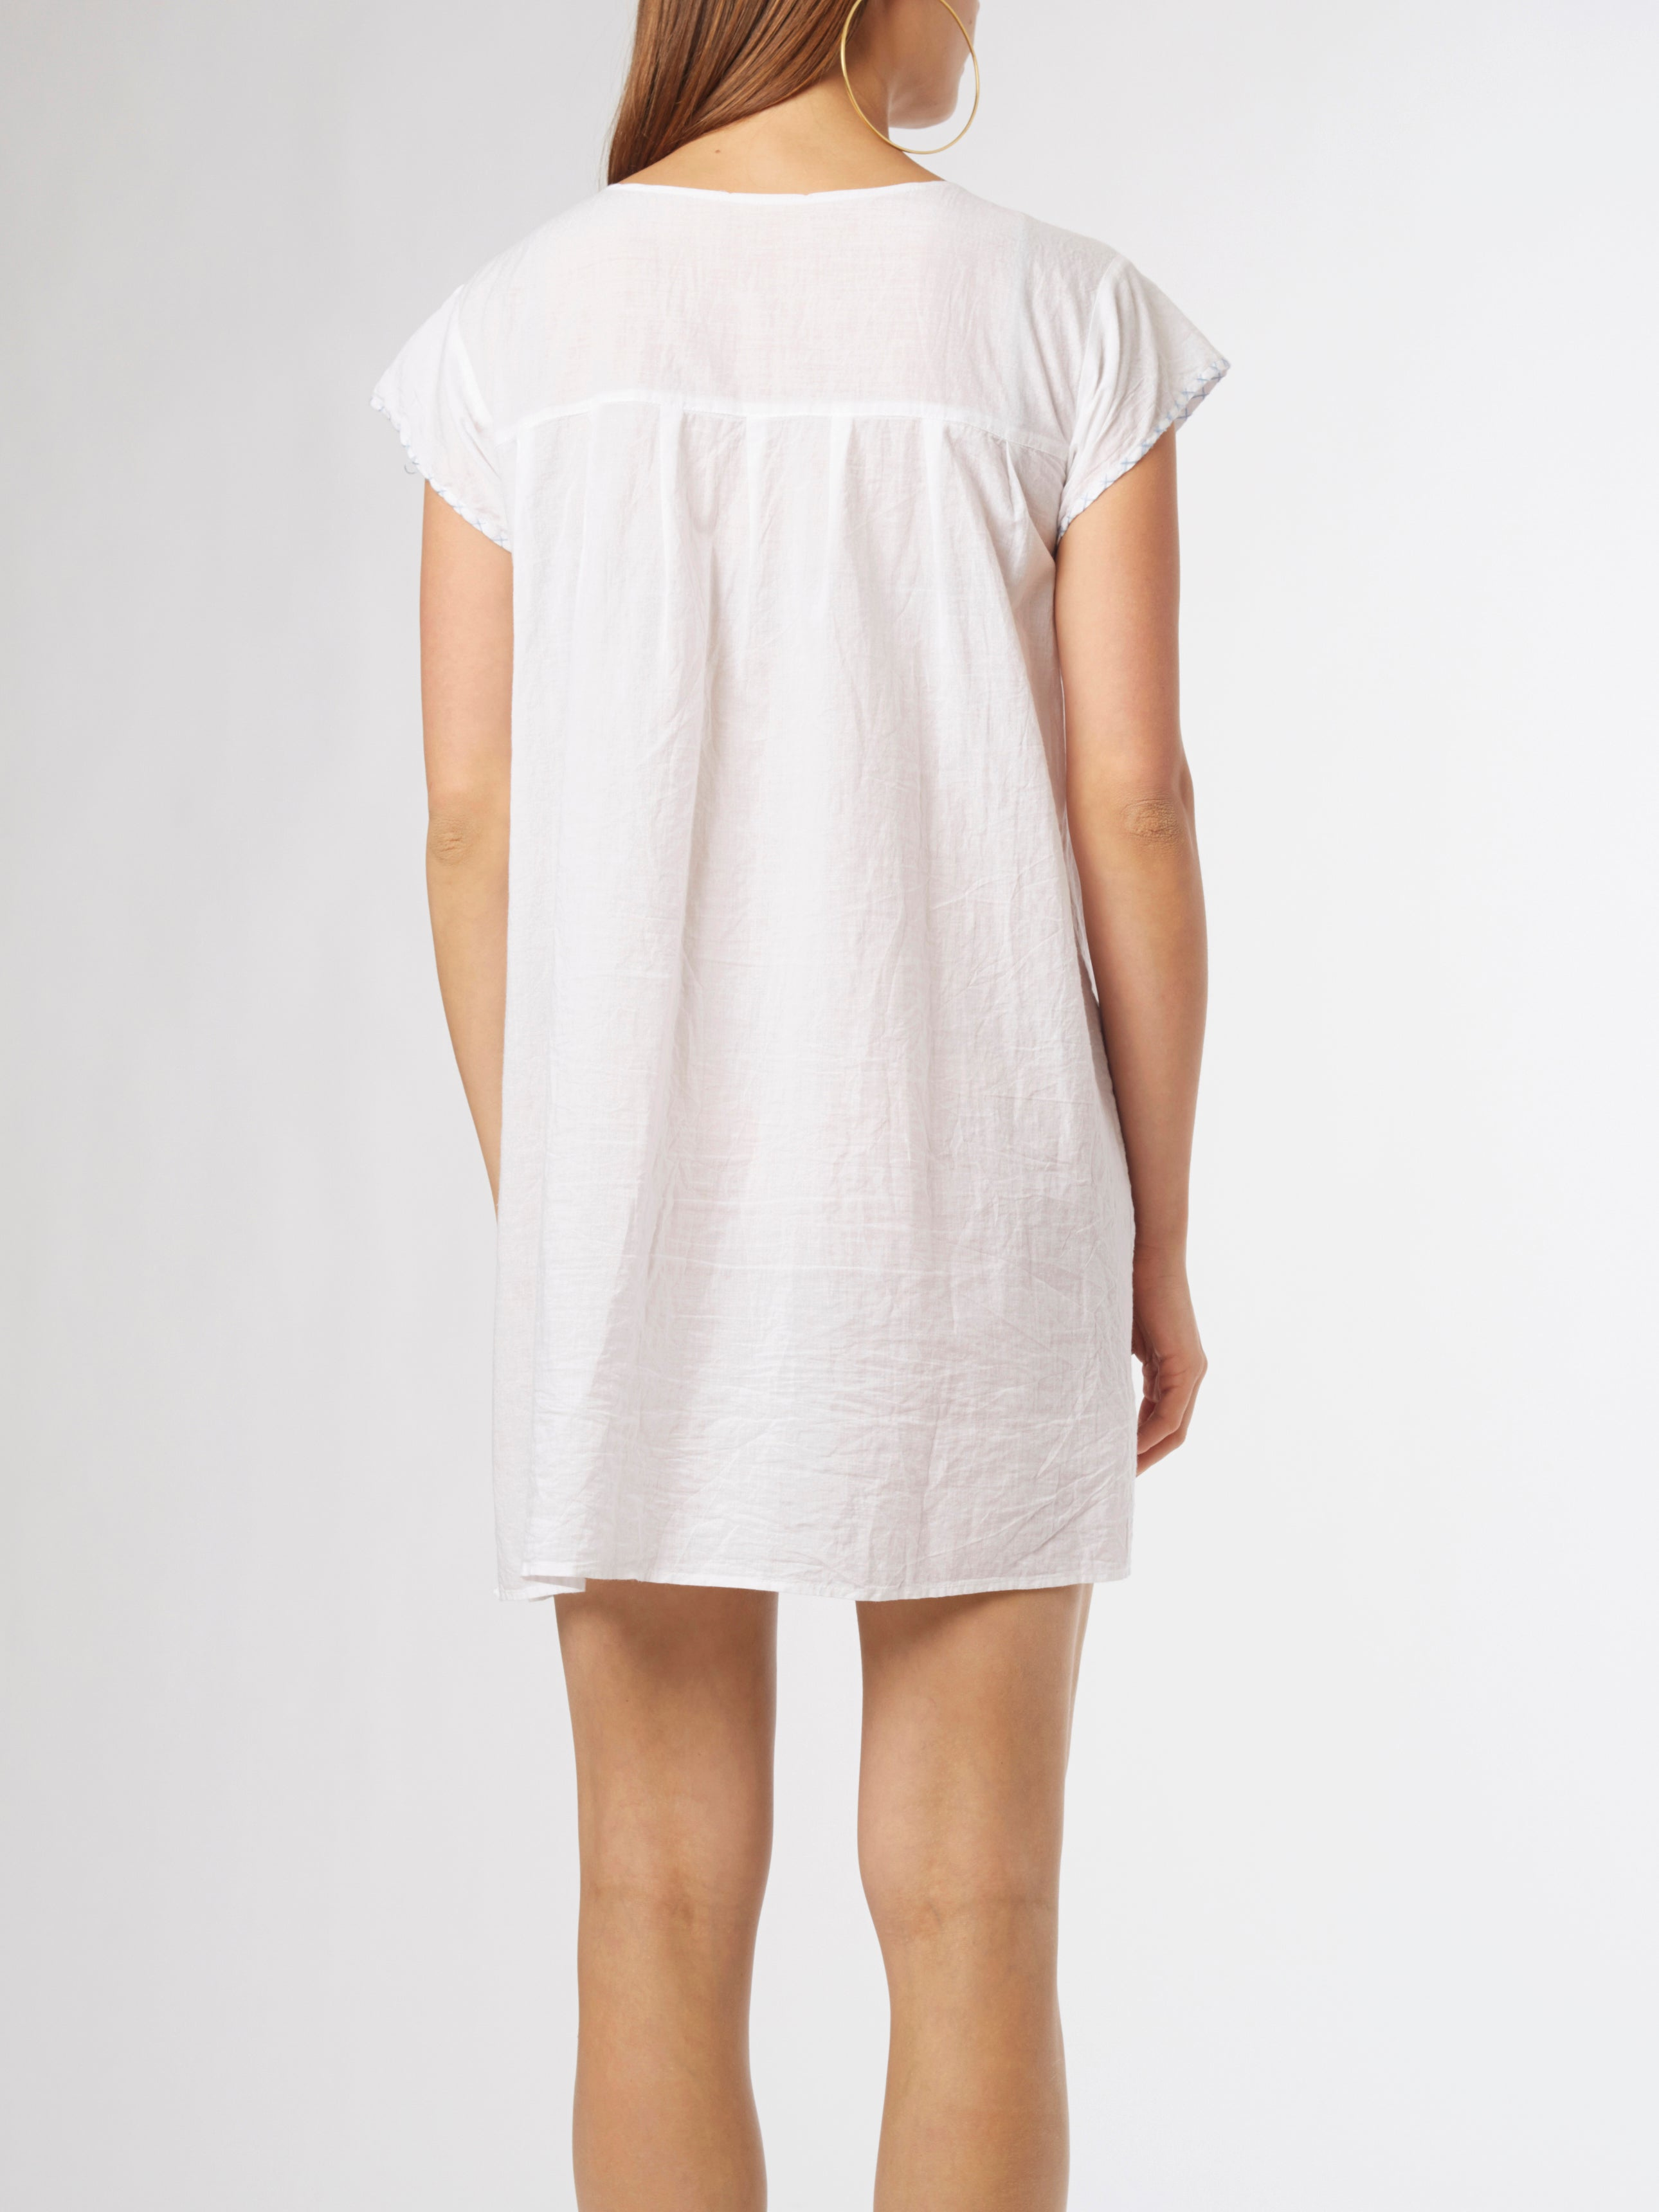 <b>Embroidered Short Dress</b><br><i>Cotton</i>